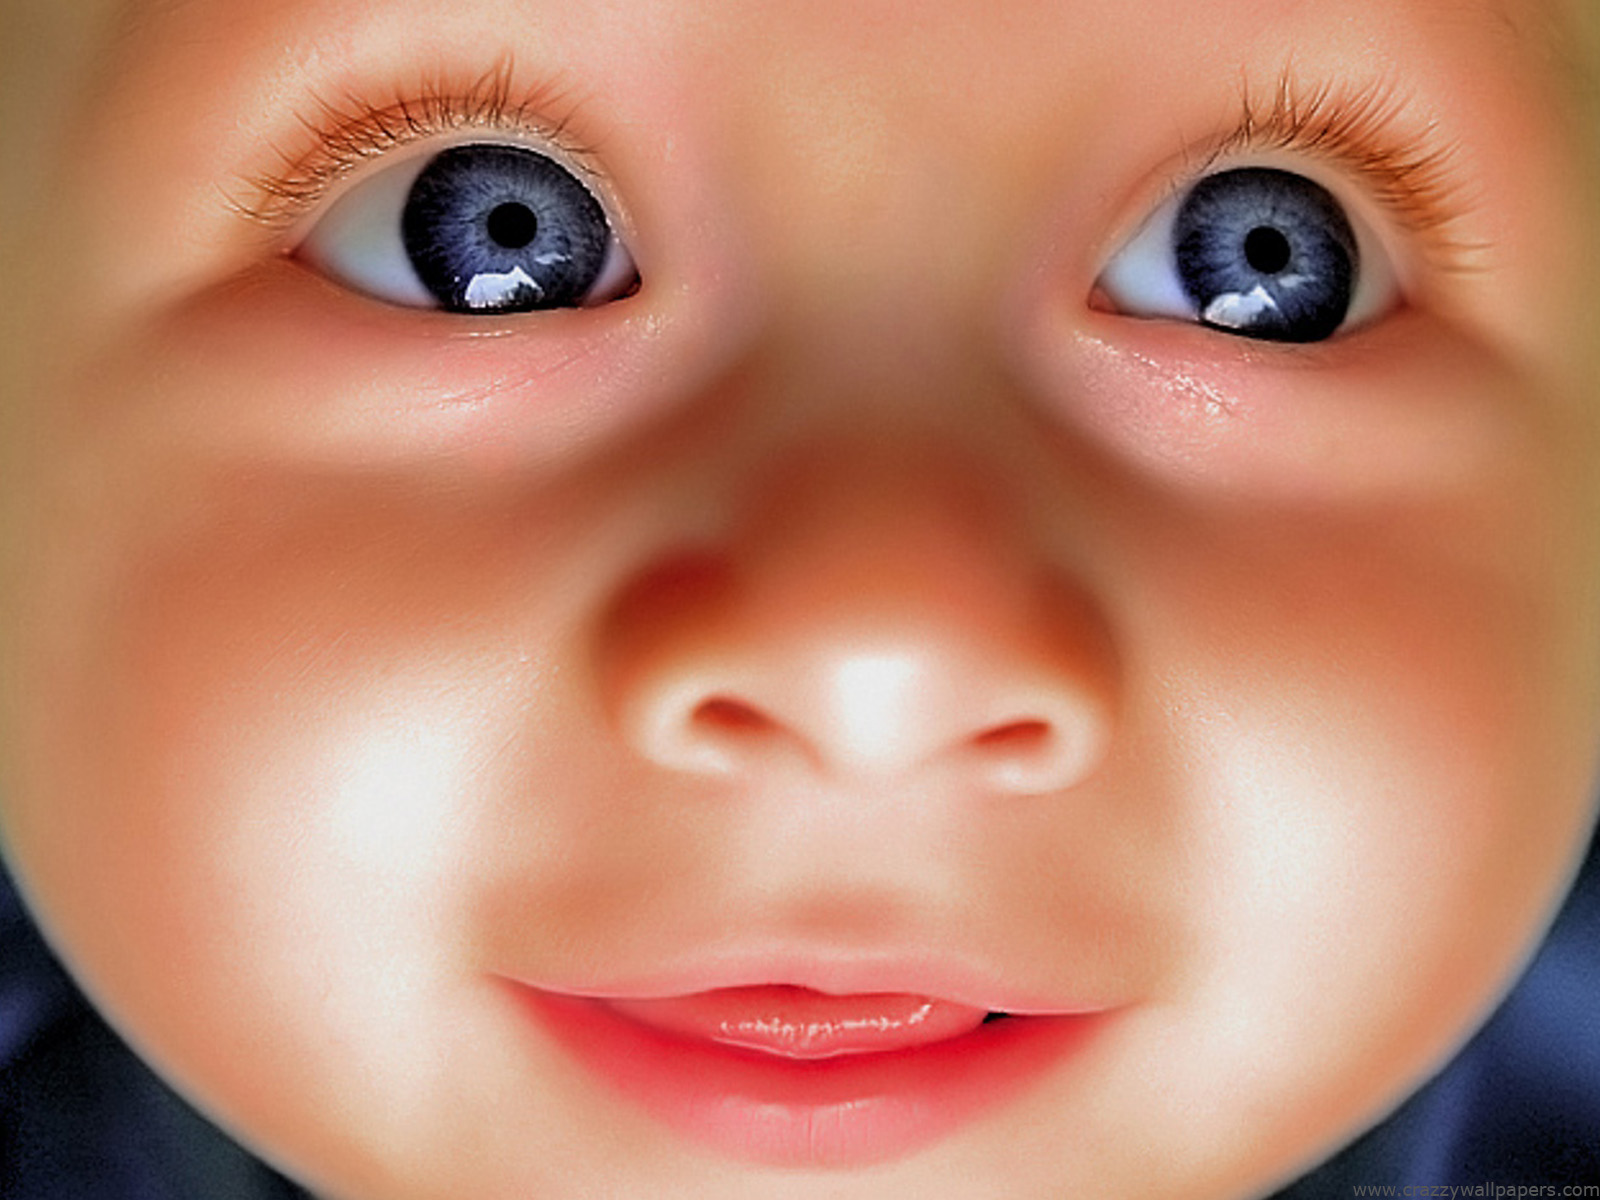 wallpaper cute little babies babies, cute, eyes, little